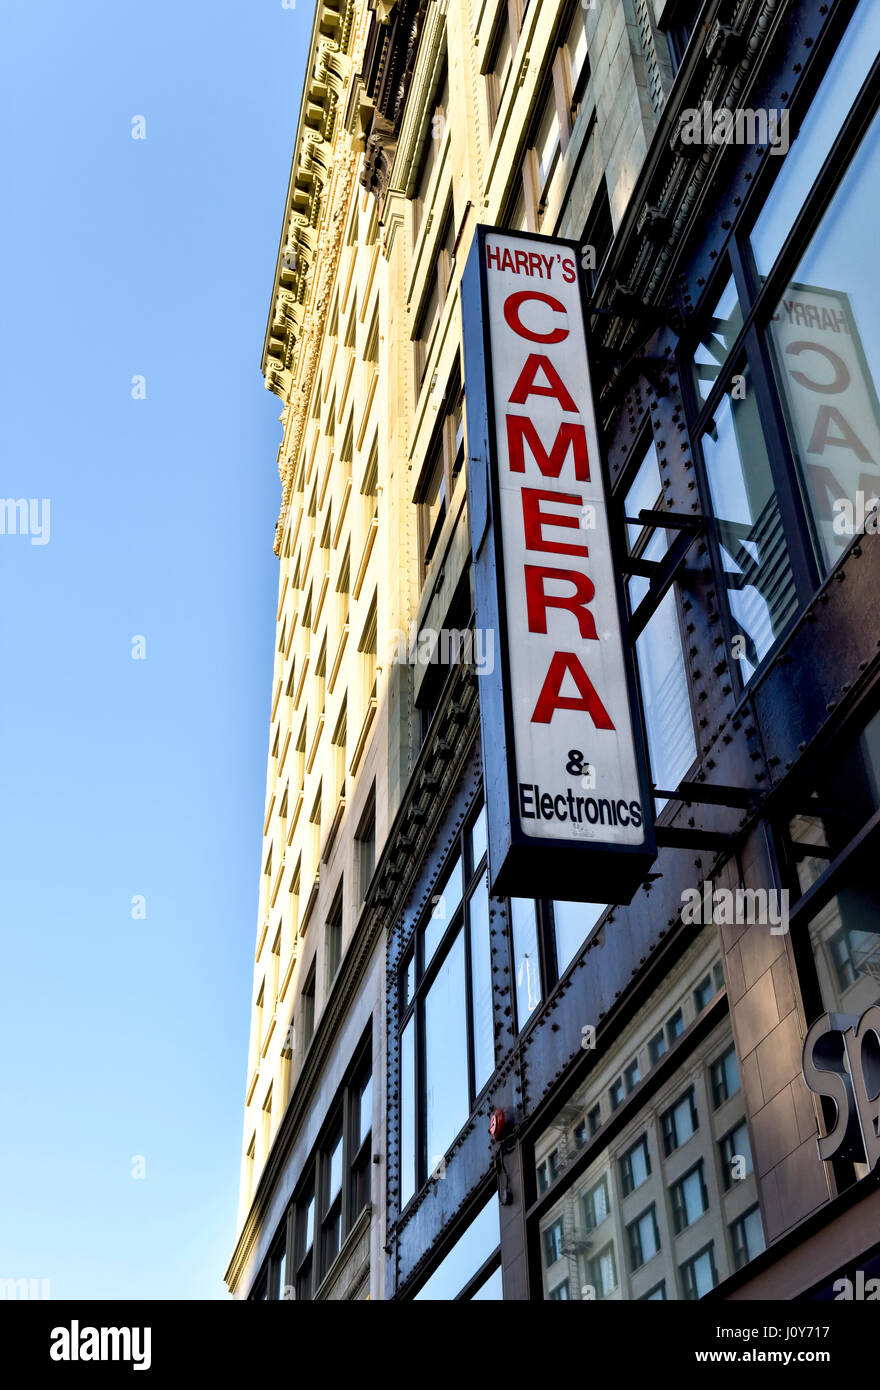 A sign for Harry's Camera and Electronics in downtown Los Angeles California - Stock Image